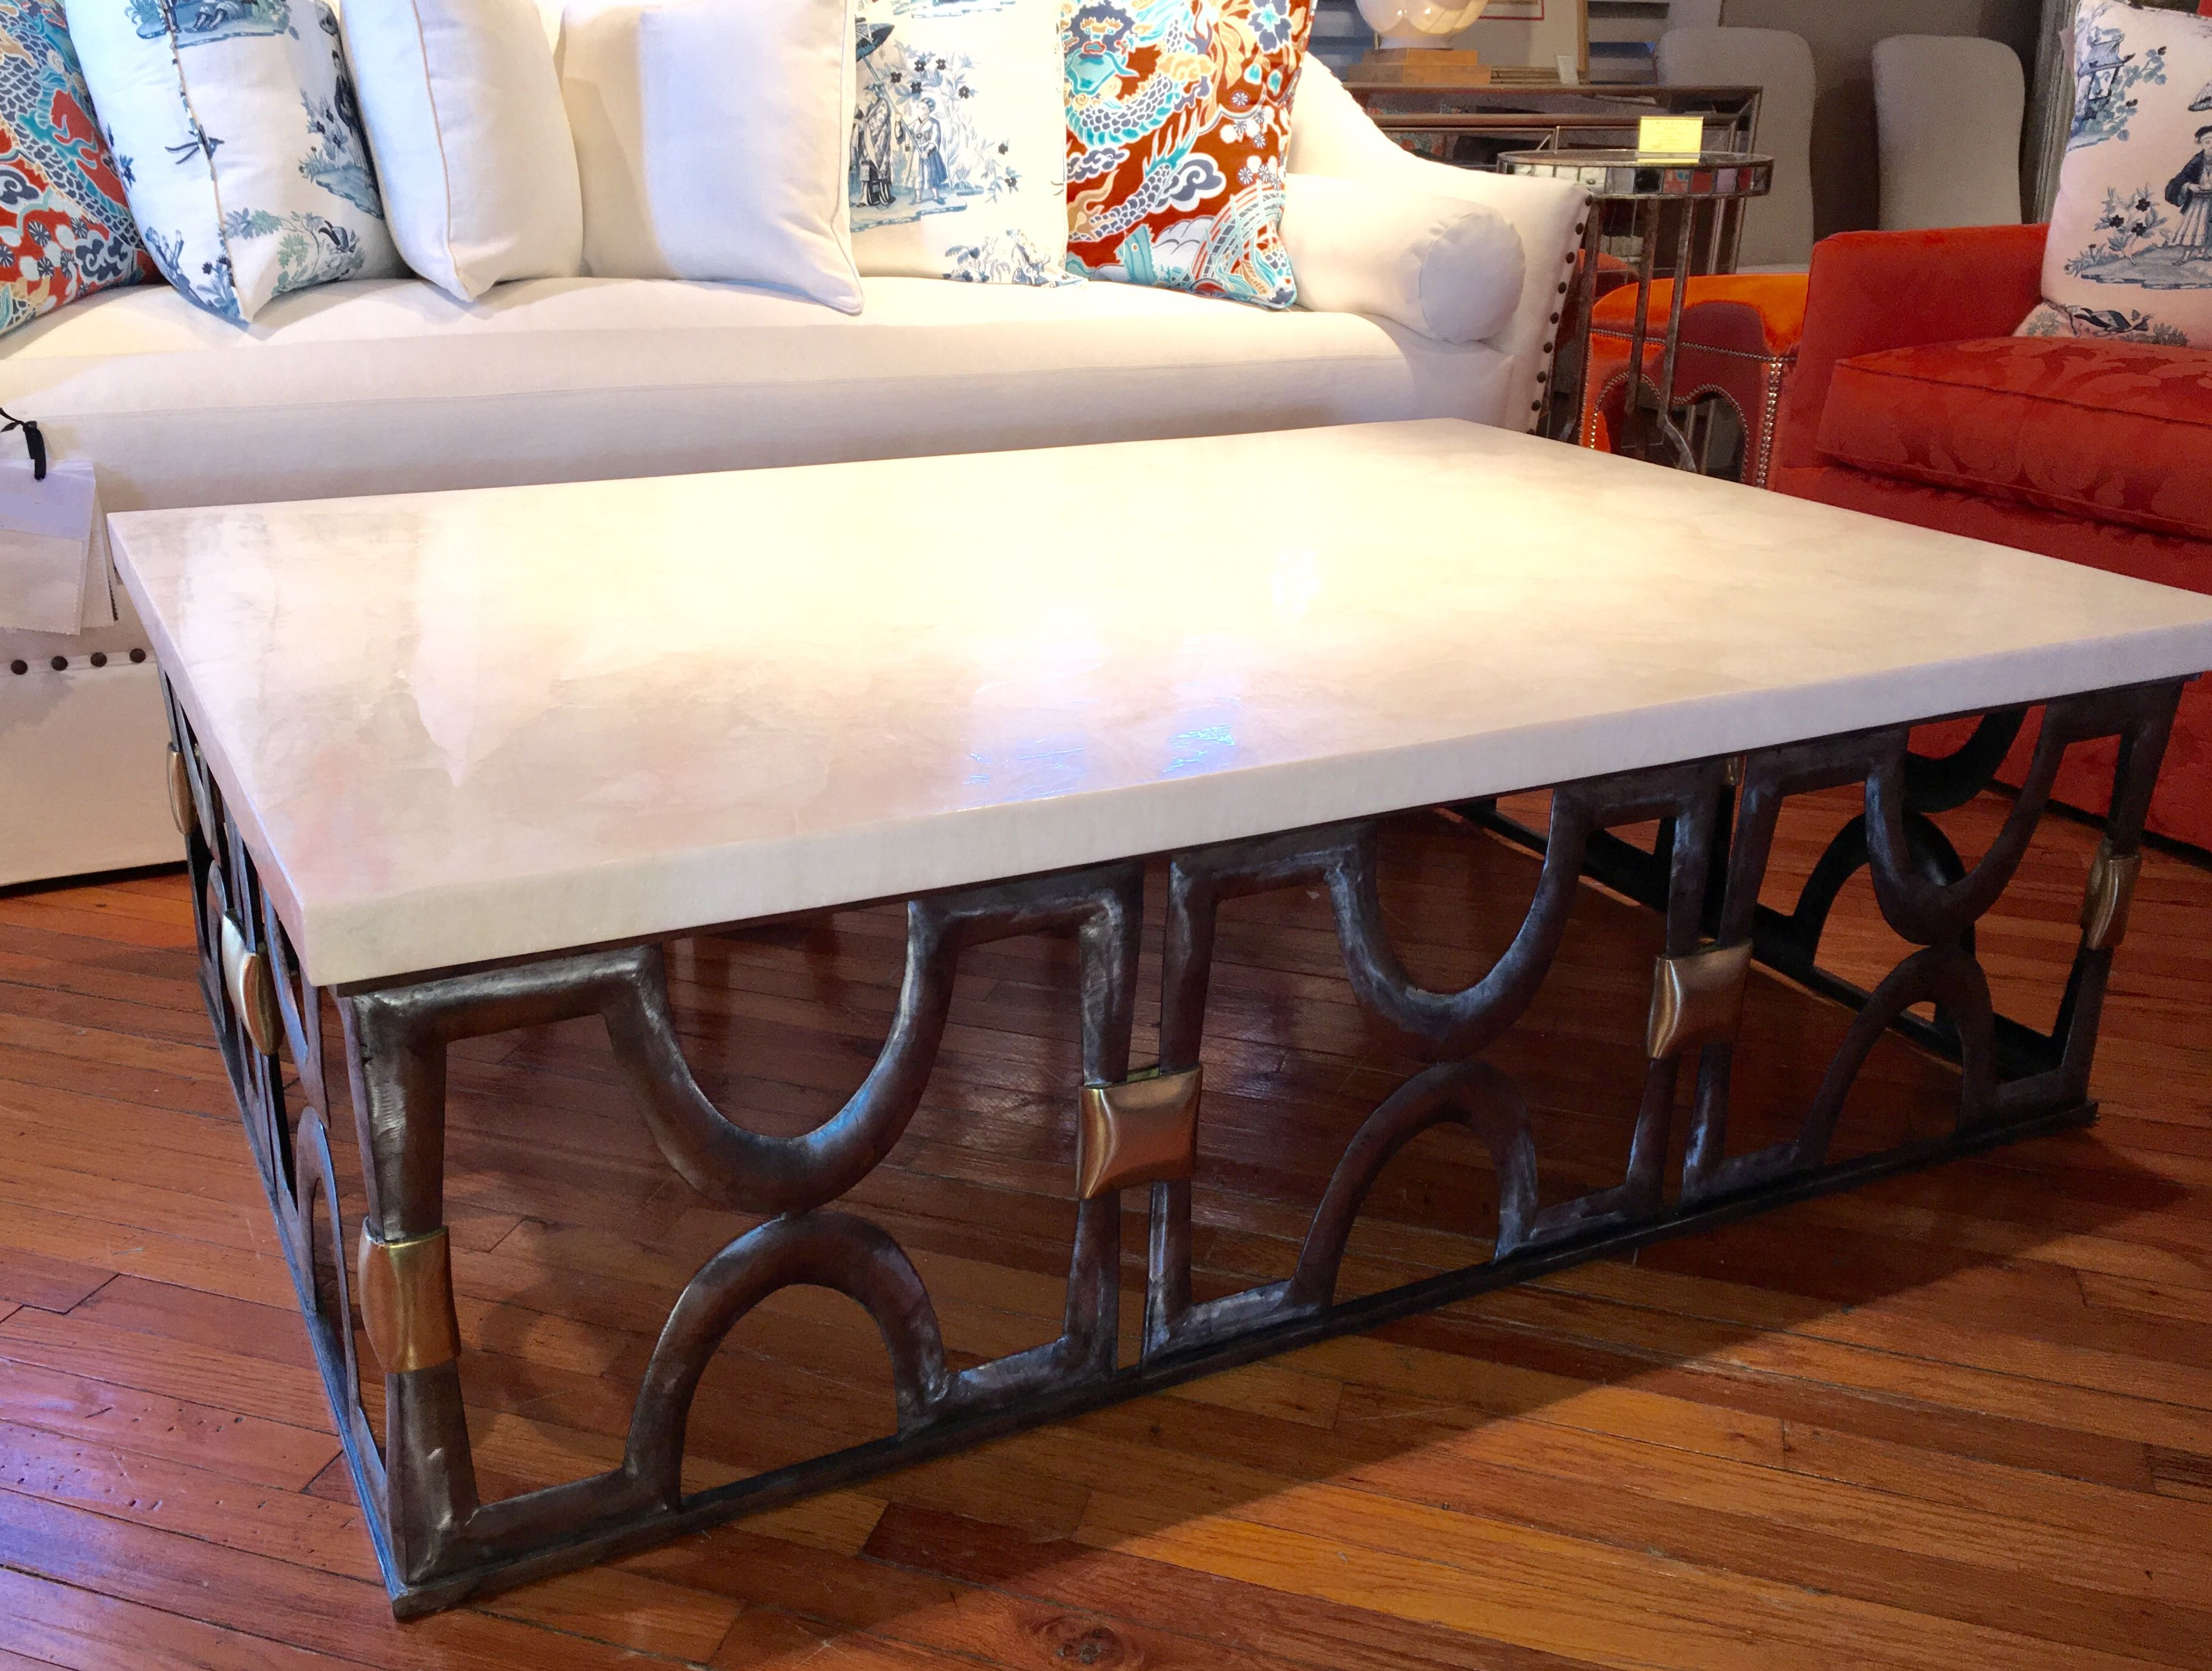 Stone Top Coffee Tables Inside Best And Newest White Onyx Stone Top Coffee Table – Mecox Gardens (View 13 of 20)